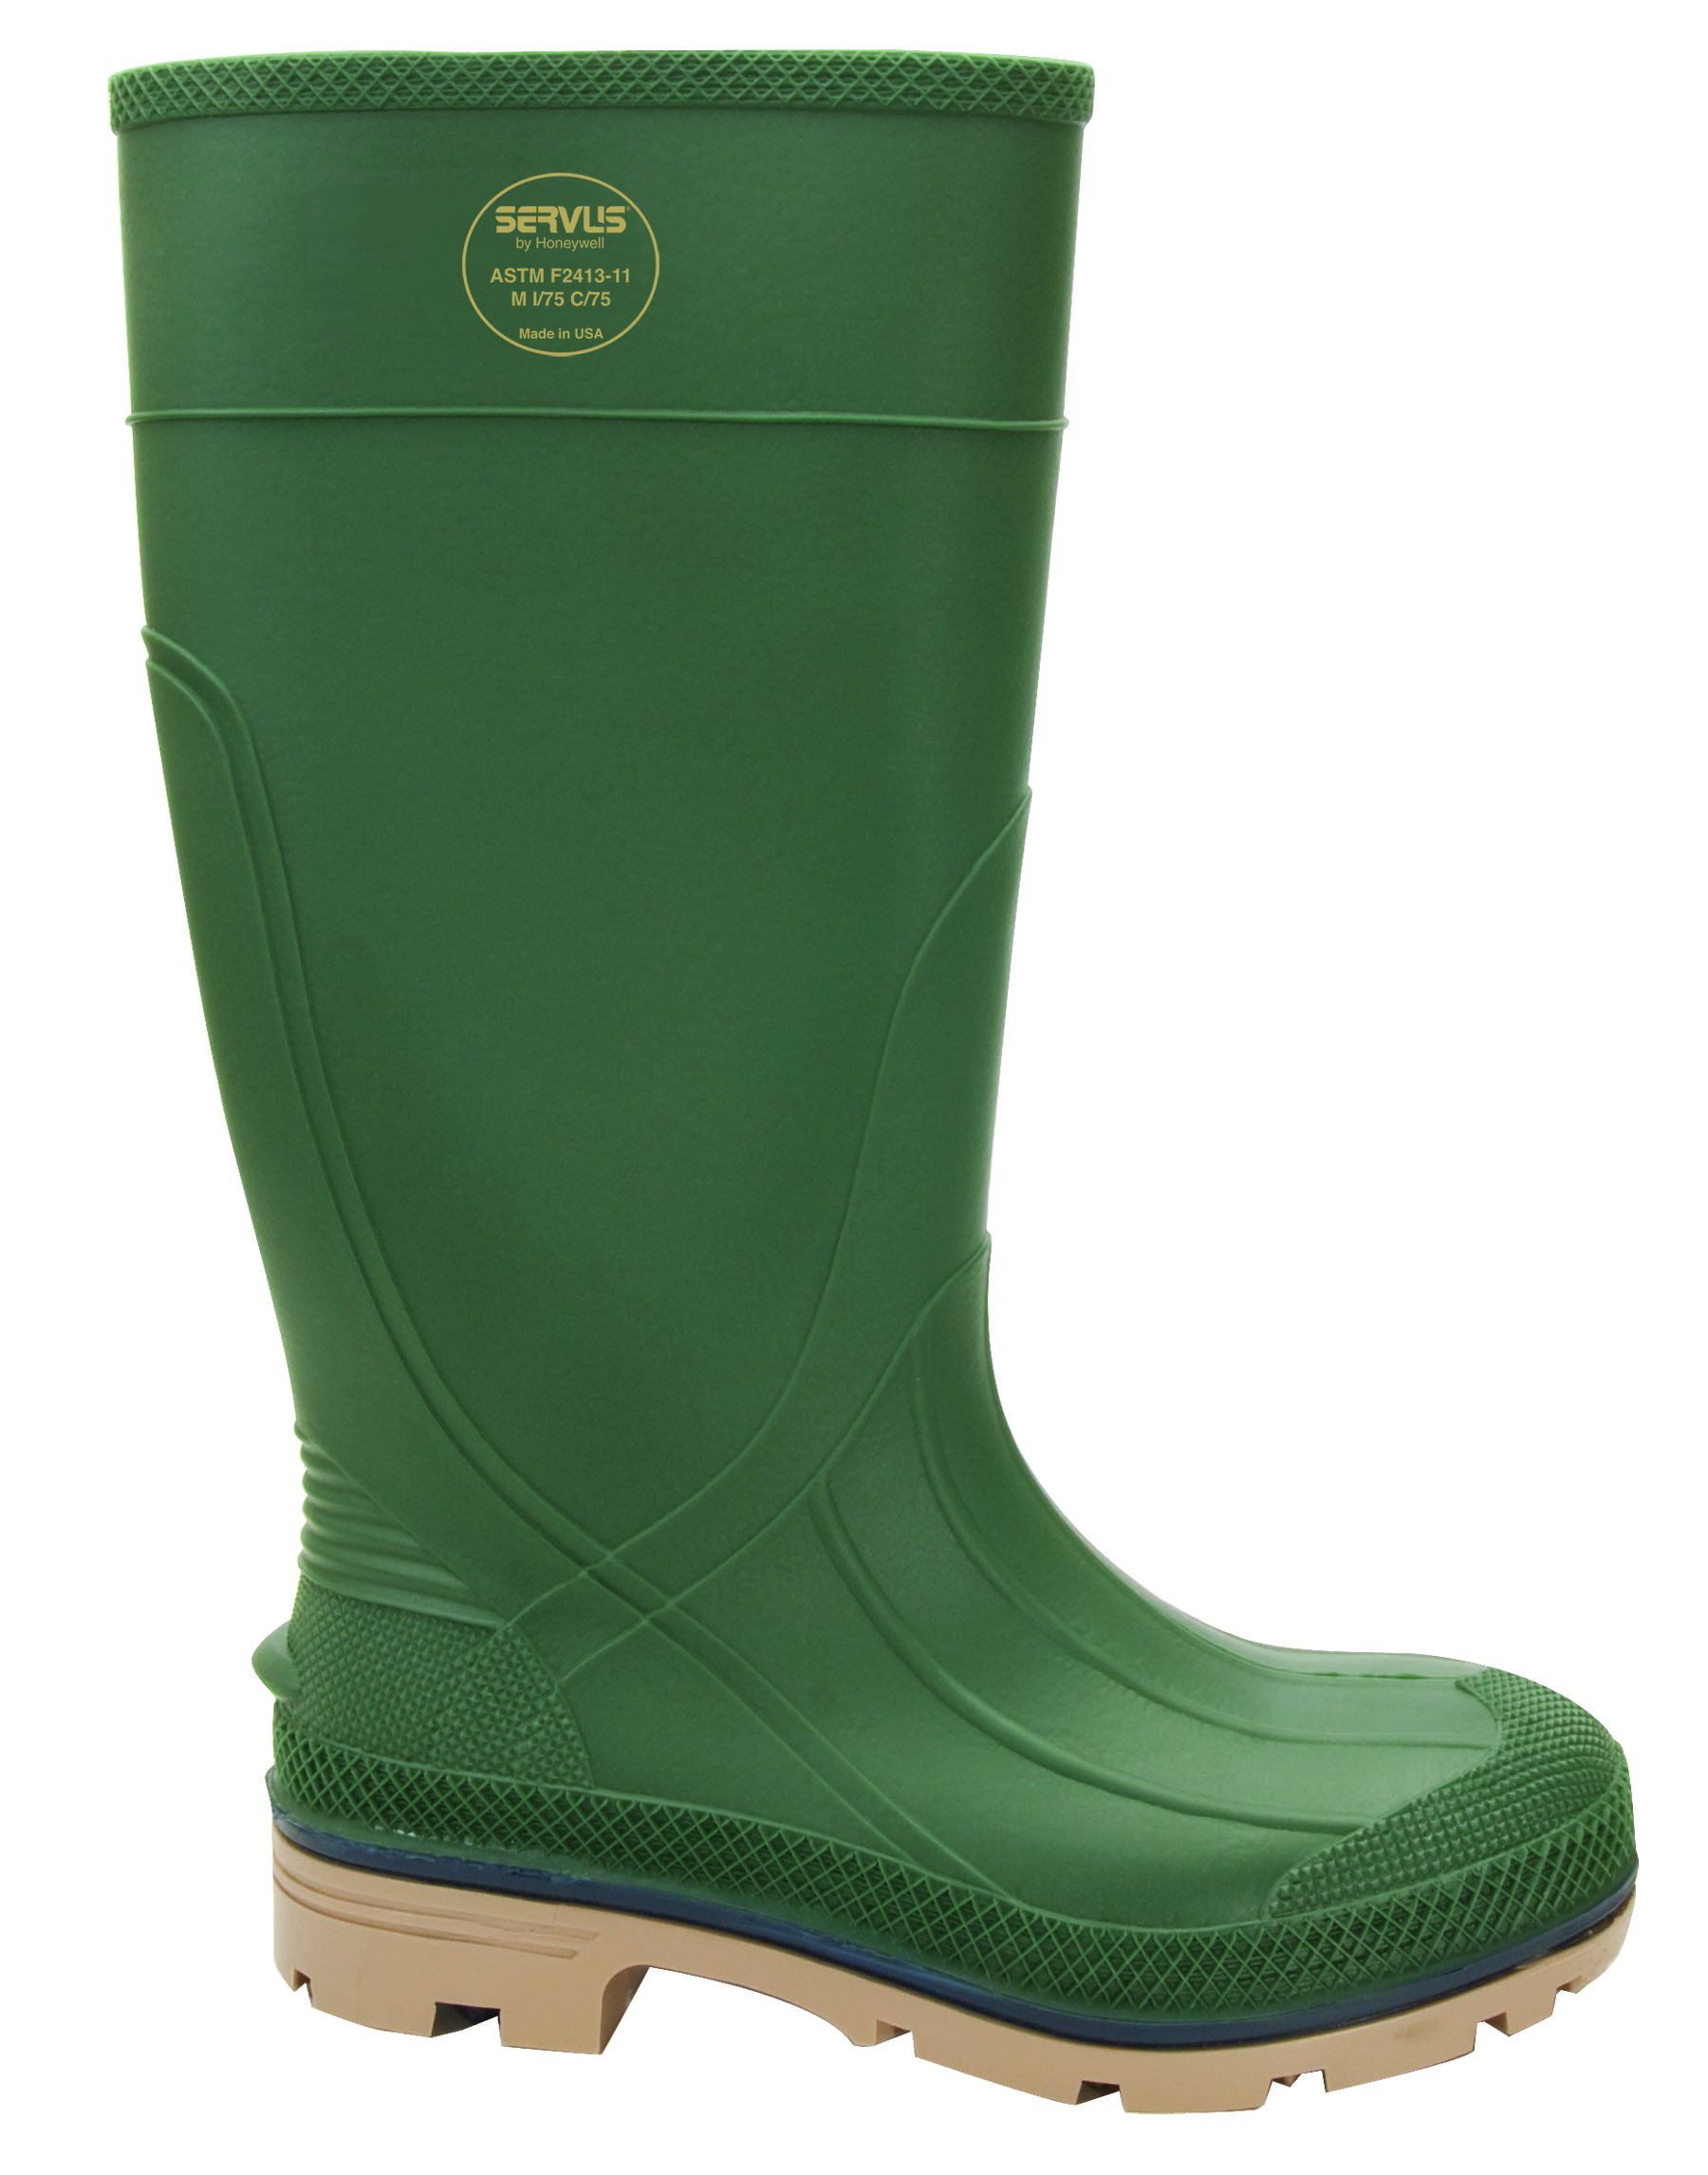 Servus XTP 15'' PVC Chemical-Resistant Steel Toe Men's Work Boots, Forest Green, Blue & Tan (75121) by Honeywell